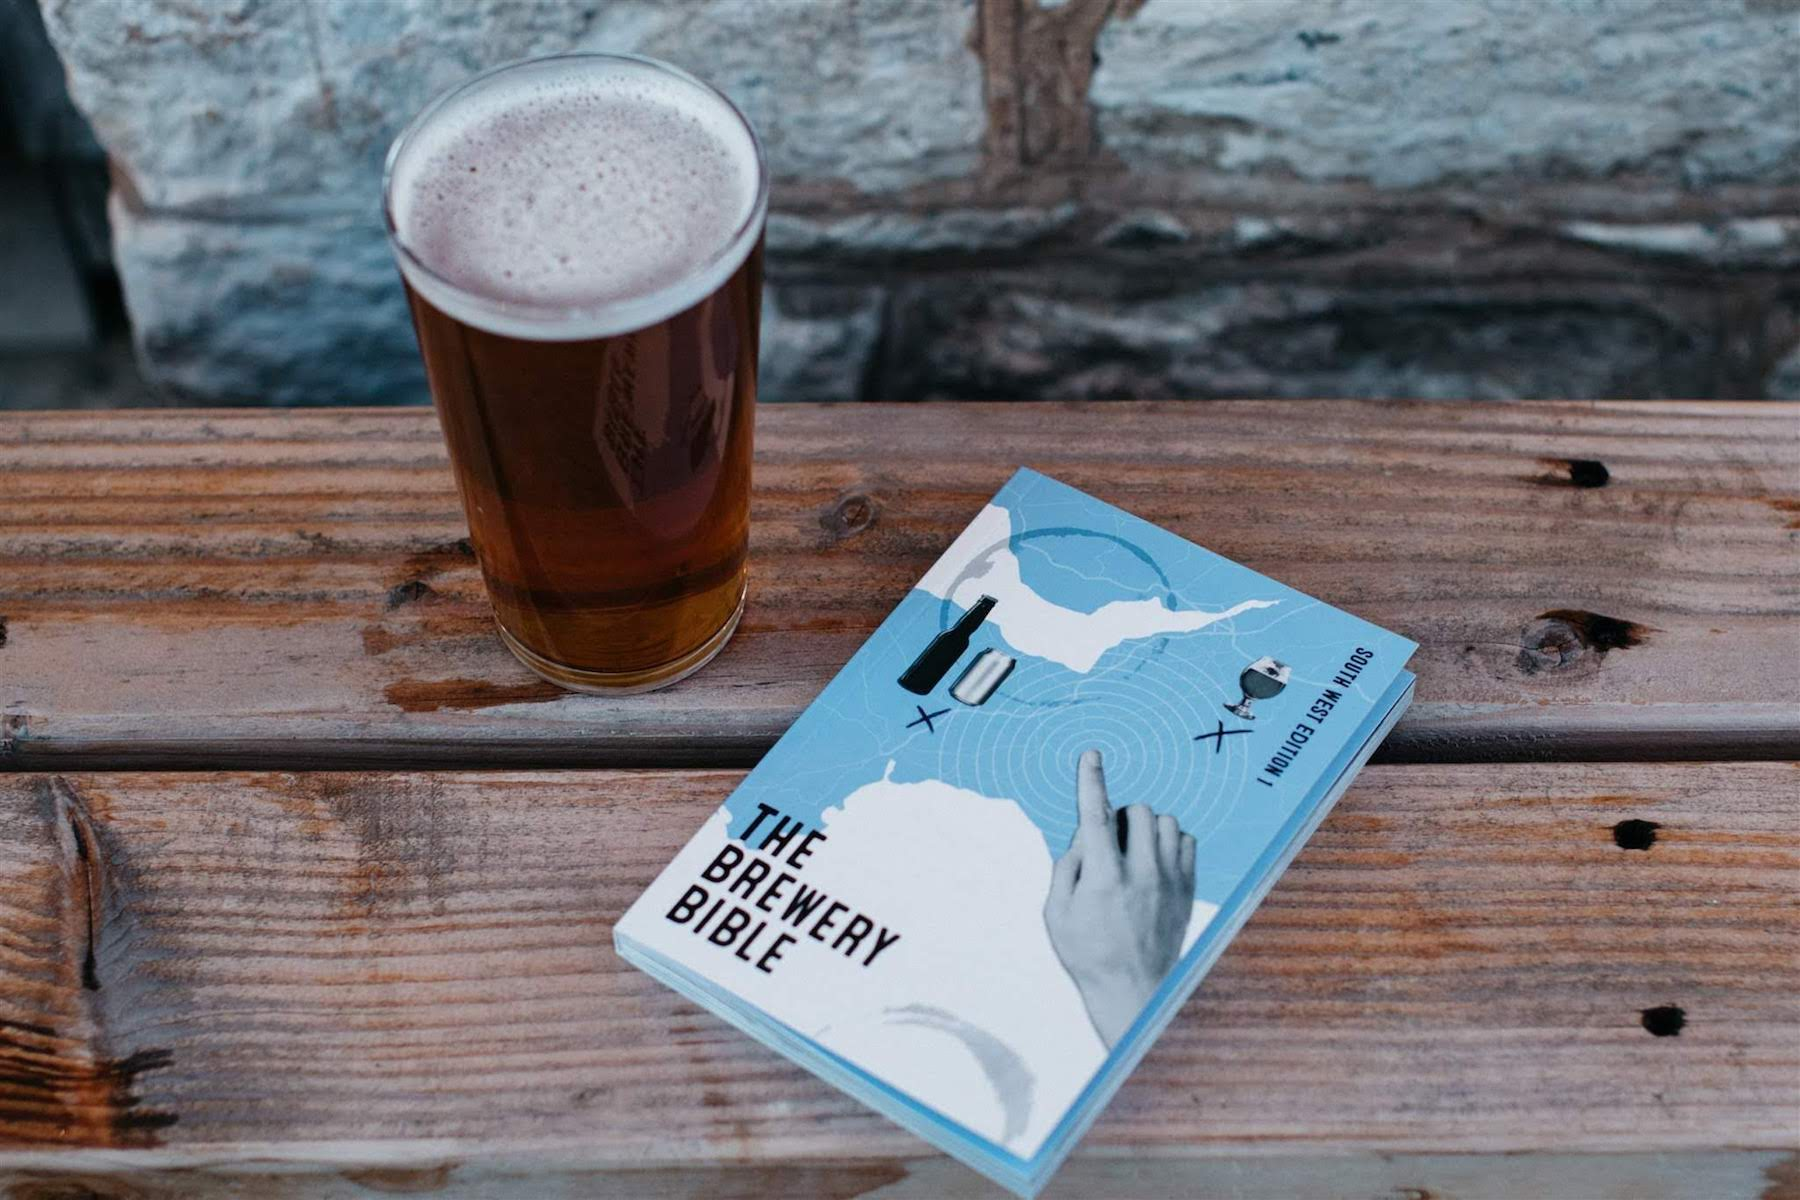 We've launched our debut book: The Brewery Bible - South West Edition